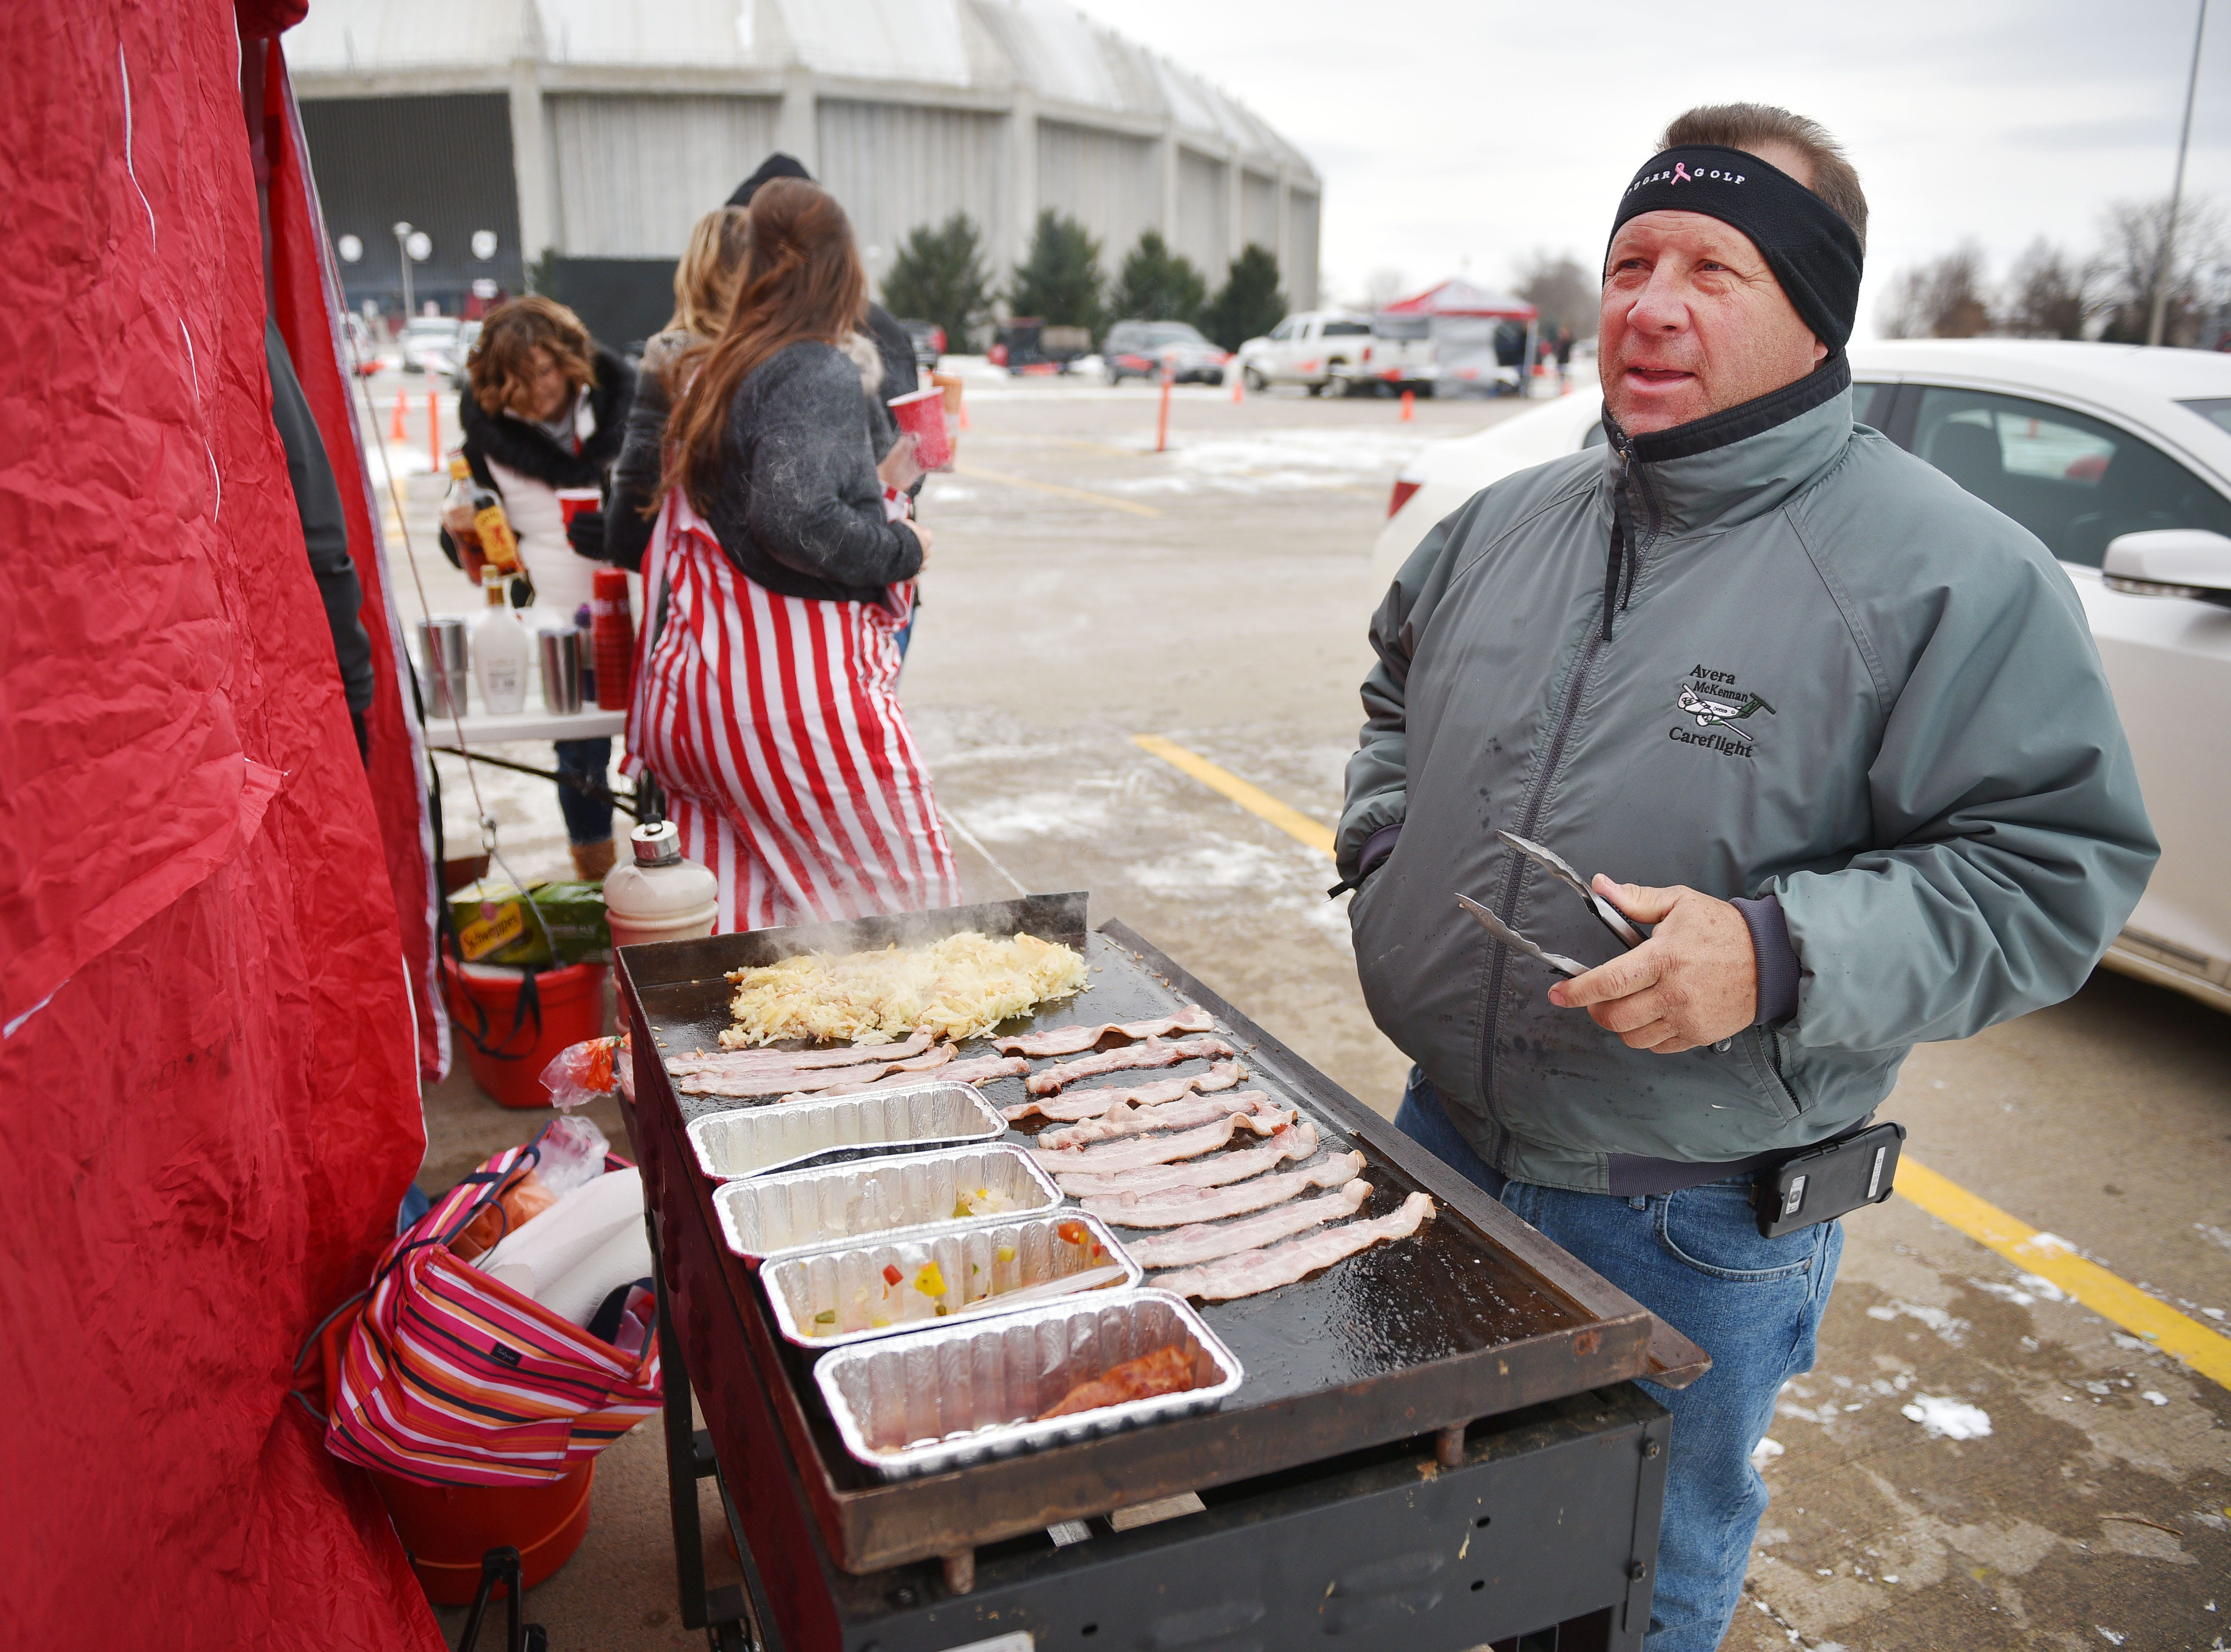 USD fan Tom Leif cook bacon and hash browns for breakfast burritos during the USD tailgate before the game against Western Illinois Saturday, Nov. 10, at the DakotaDome in Vermillion.